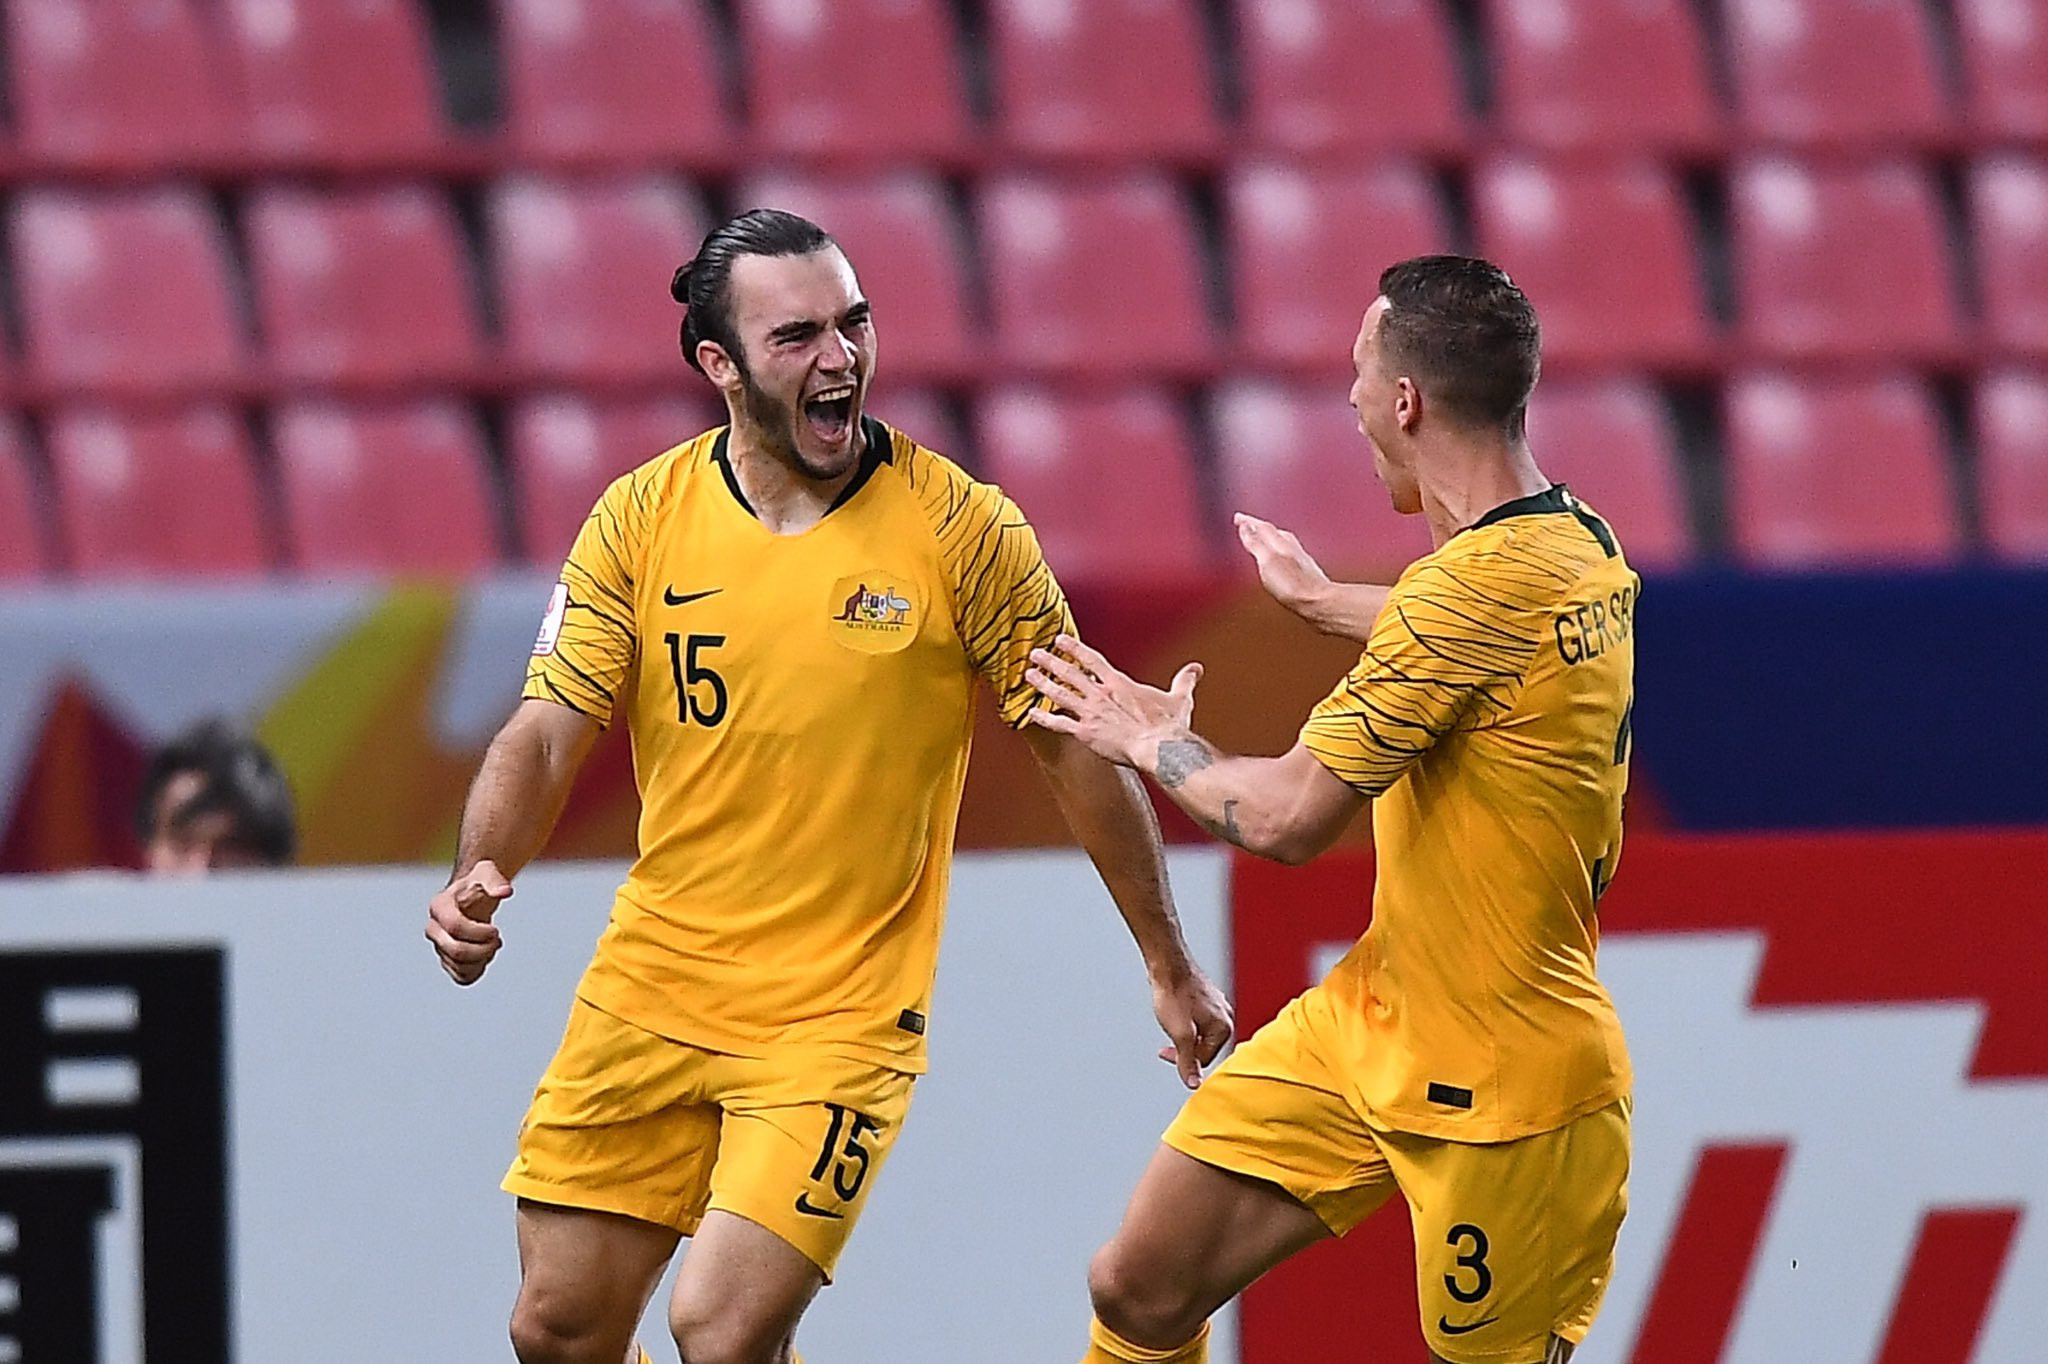 Australia qualify for Olympic men's football tournament at Tokyo 2020